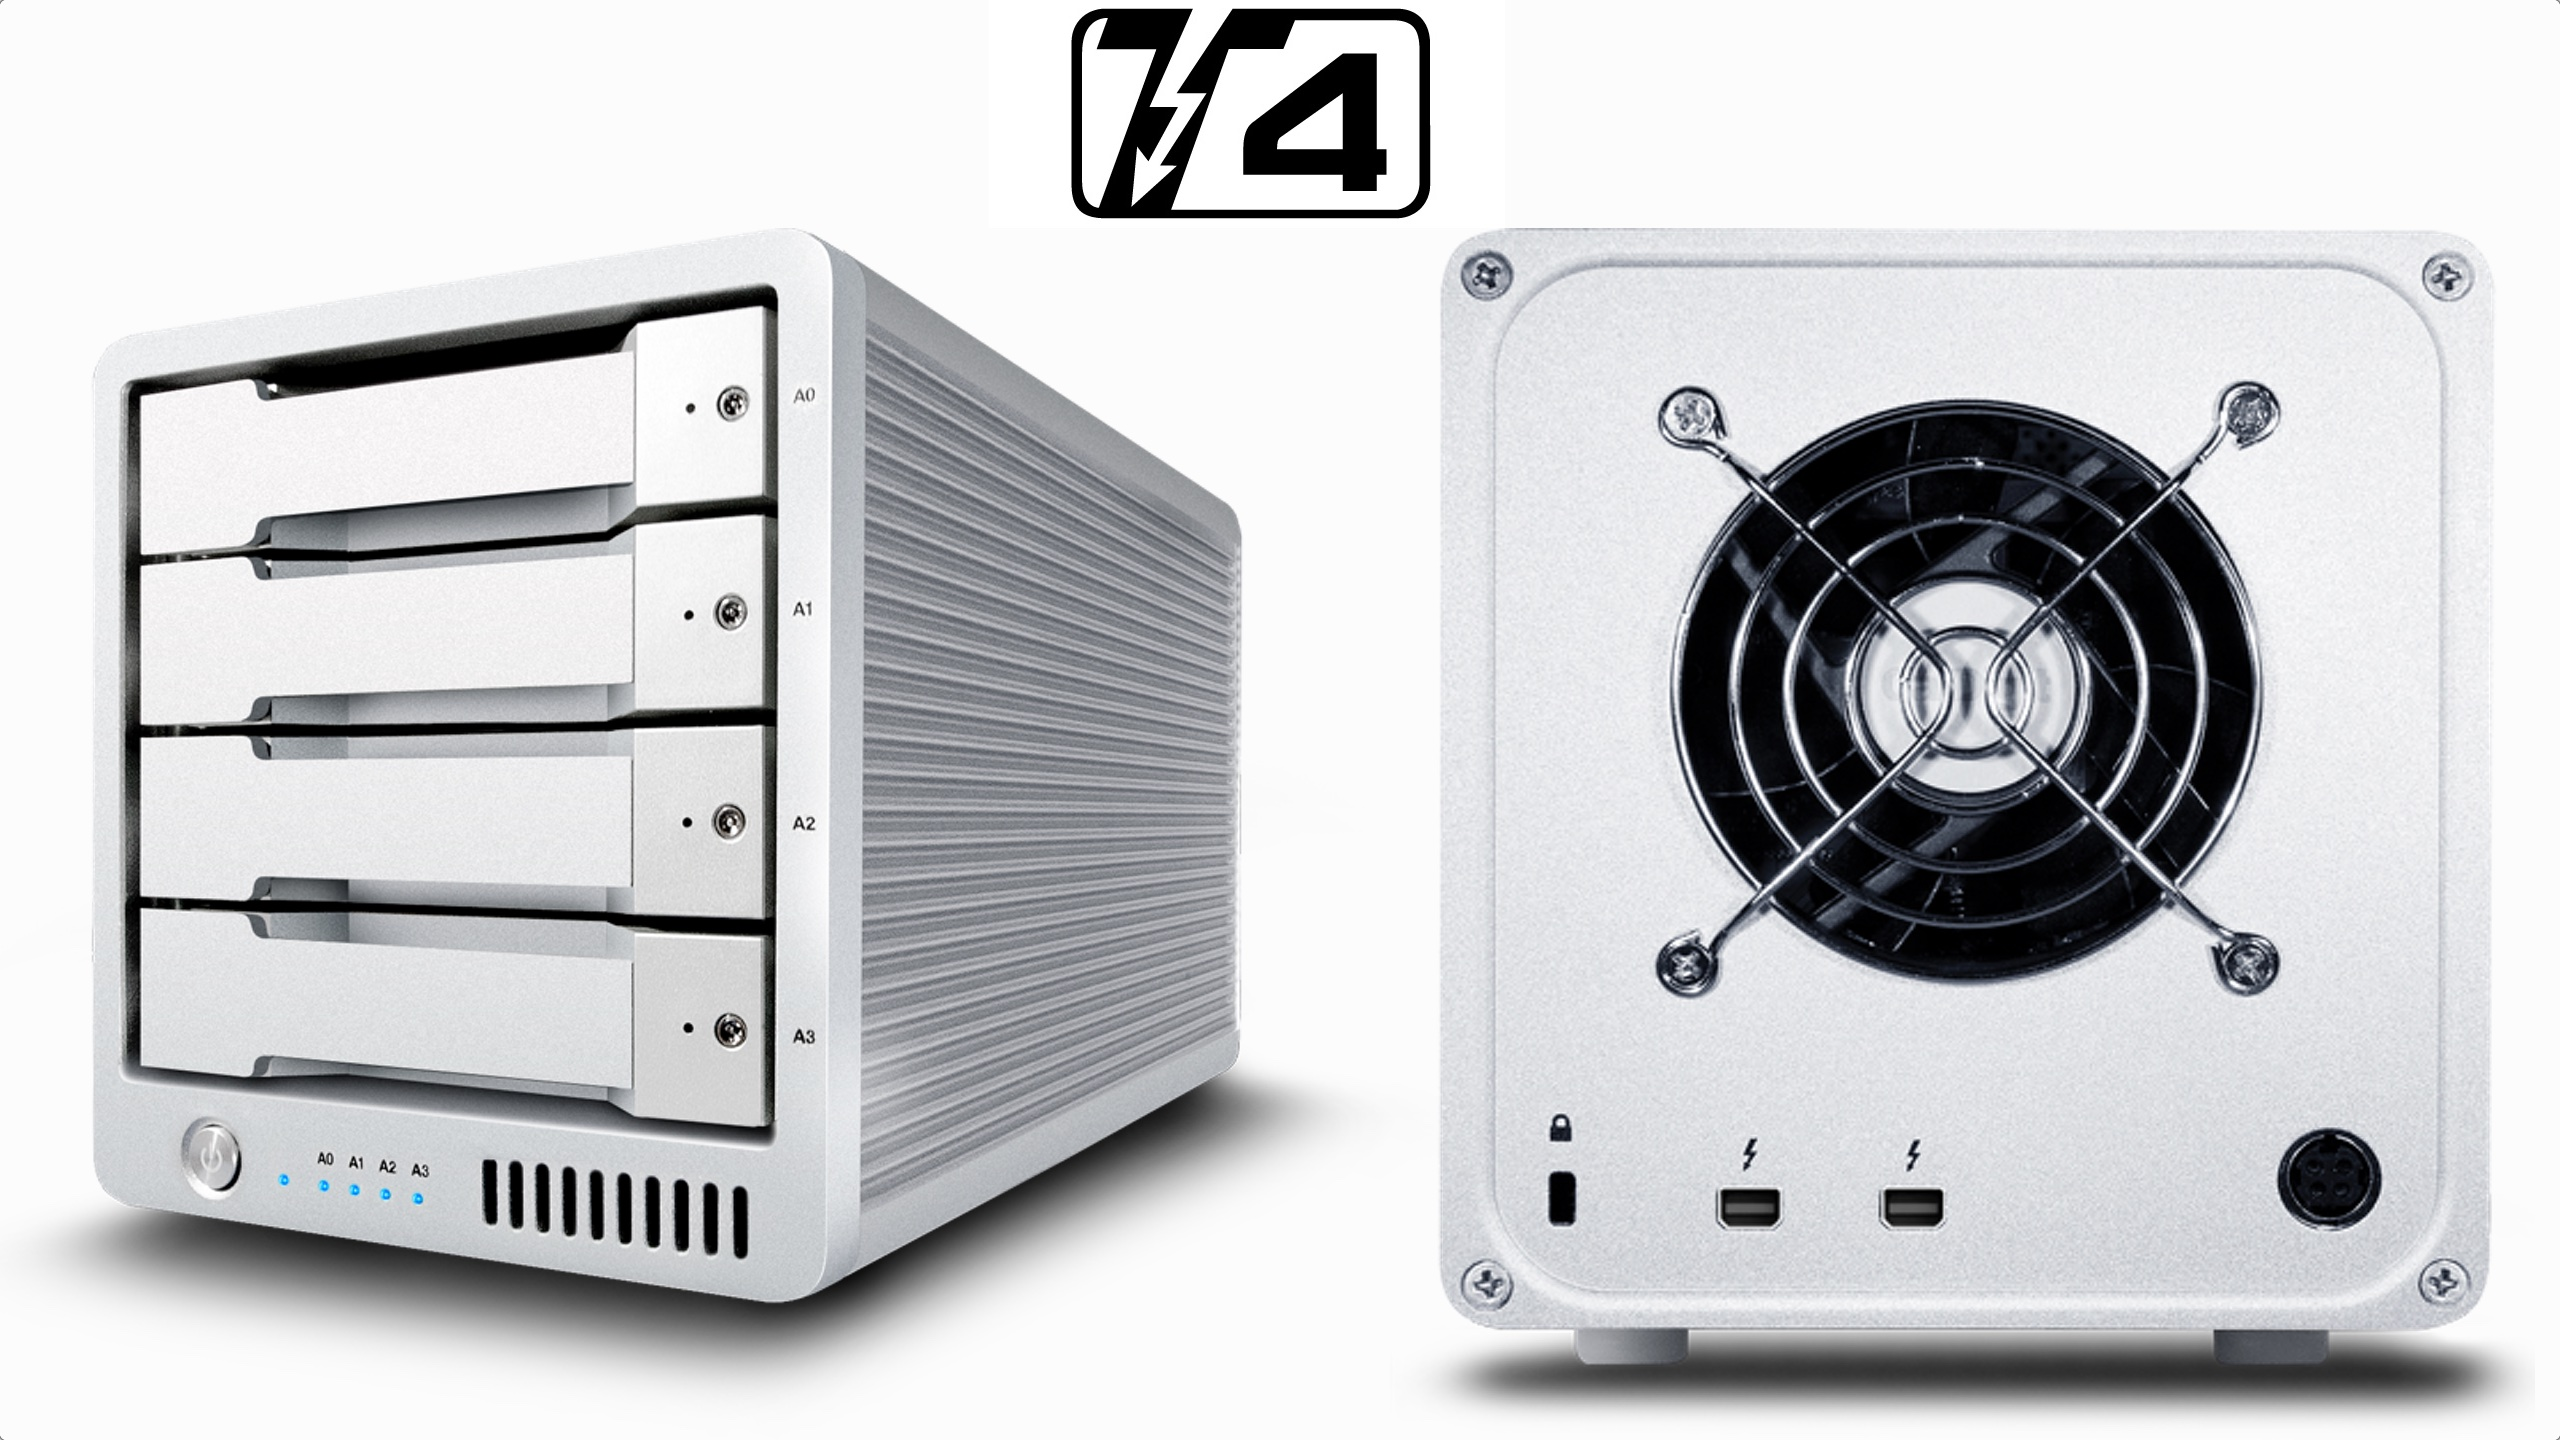 Caldigit-t4-thunderbolt2-raid-array